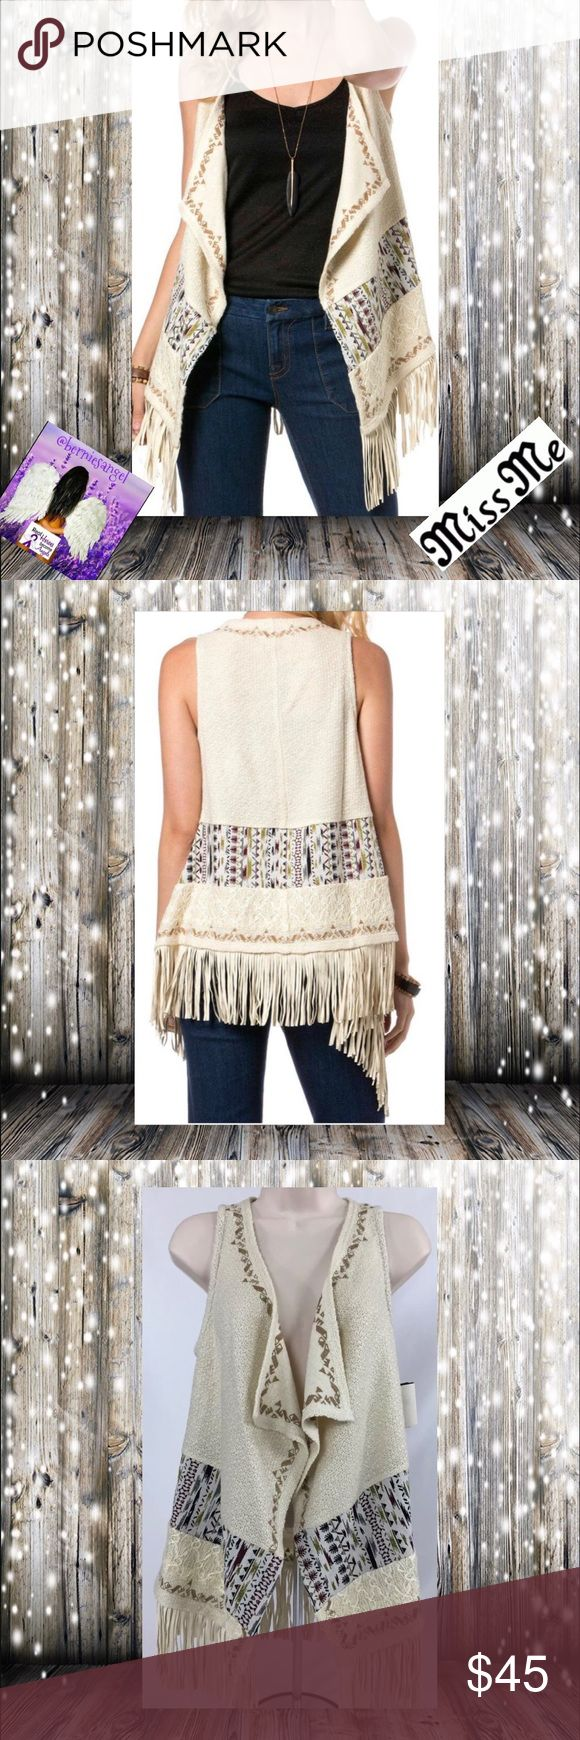 Miss Me  Fringe Aztec Vest Small NWT Miss Me  Fringe Aztec Vest Small NWT The perfect vest for the perfect boho chic look this season! This vest is meant to be worn open style. Has an embroidered pattern and colors as shown. The hem of the vest has fringe. This vest looks great with your favorite denim, boots and a floppy hat for the perfect daytime boho chic look.  Fiber Content: Self: 100% acrylic; contrast: 100% polyester. 🚫Trades. Please ask all questions prior to buying. Miss Me…